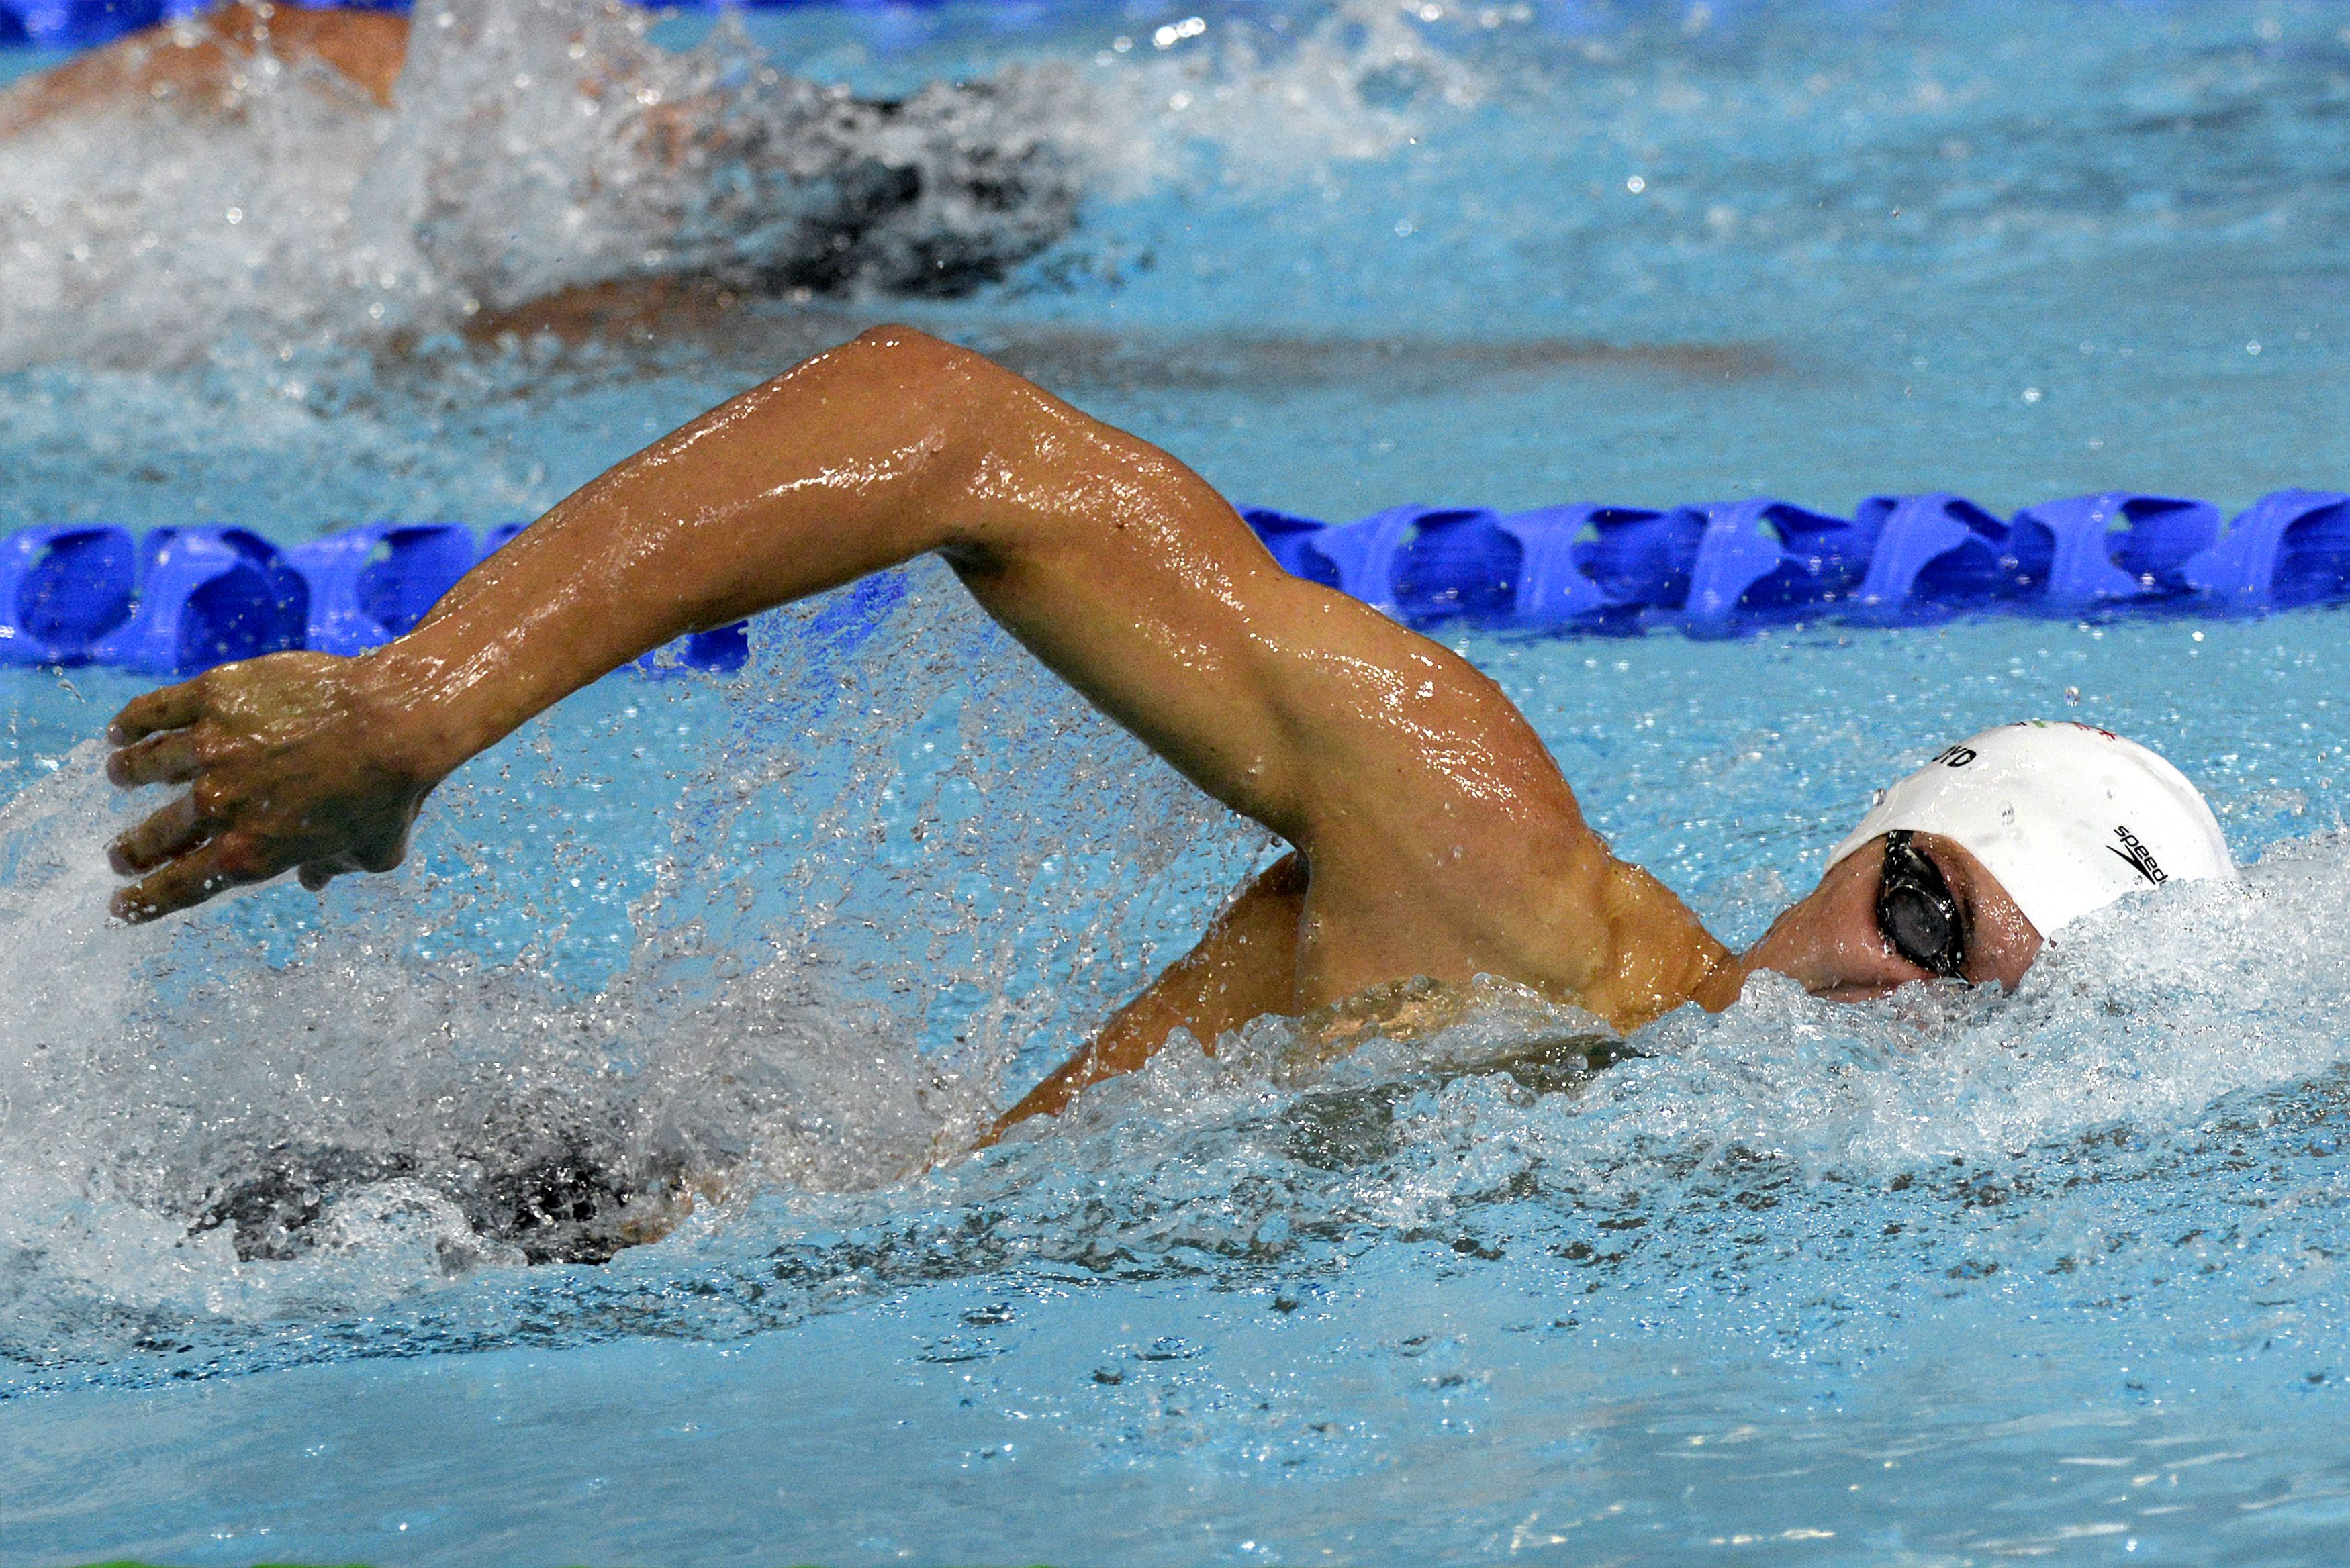 new online dating site 2012 olympics swimming Beat all competitors in 110m hurdles, swimming, long jump,  be the best in this summer's london 2012 olympics game beat all competitors in  best of new games.